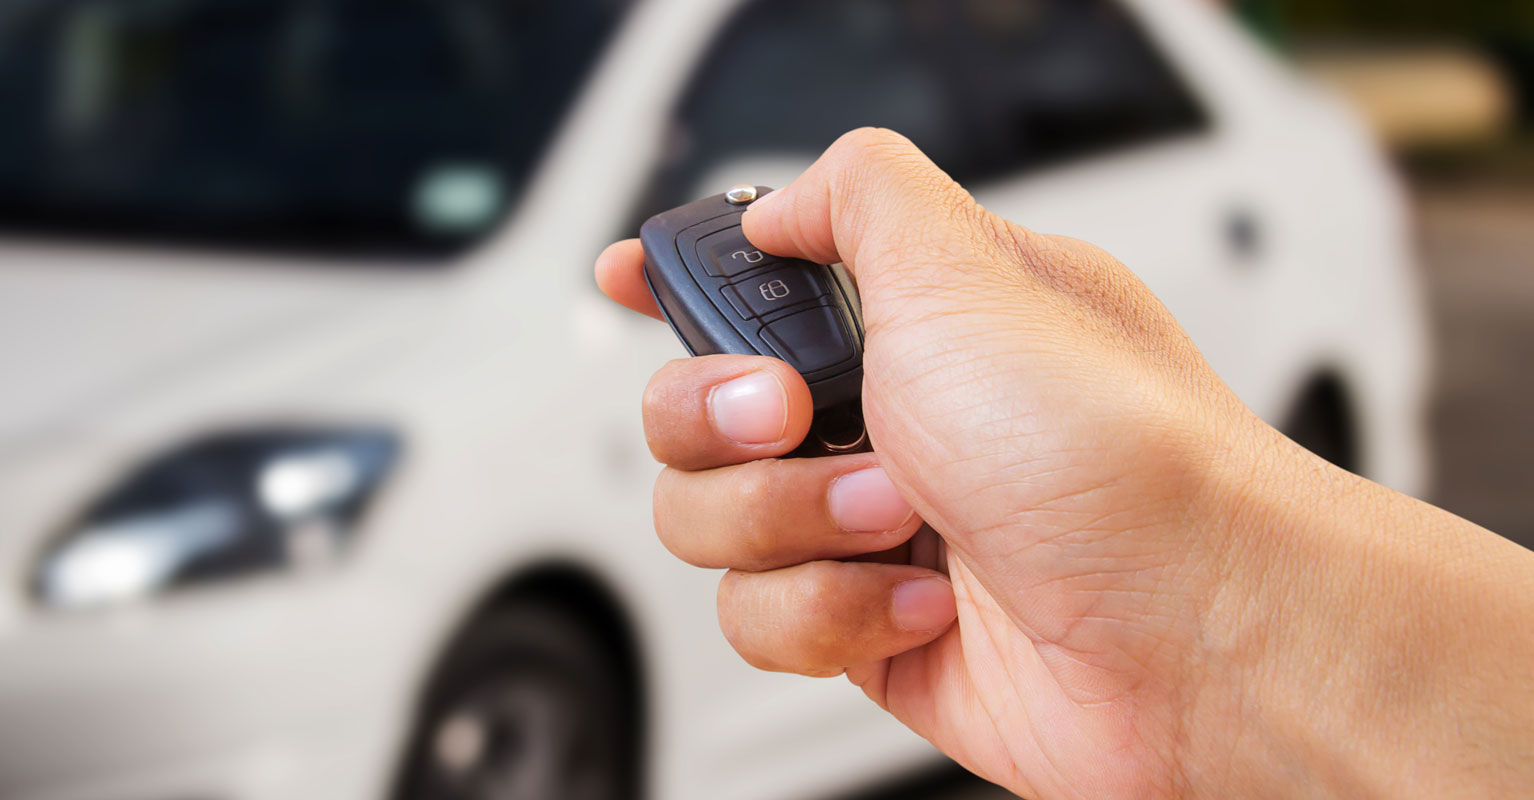 Does Car Insurance Cover Theft: Does Car Insurance Cover Car Theft?